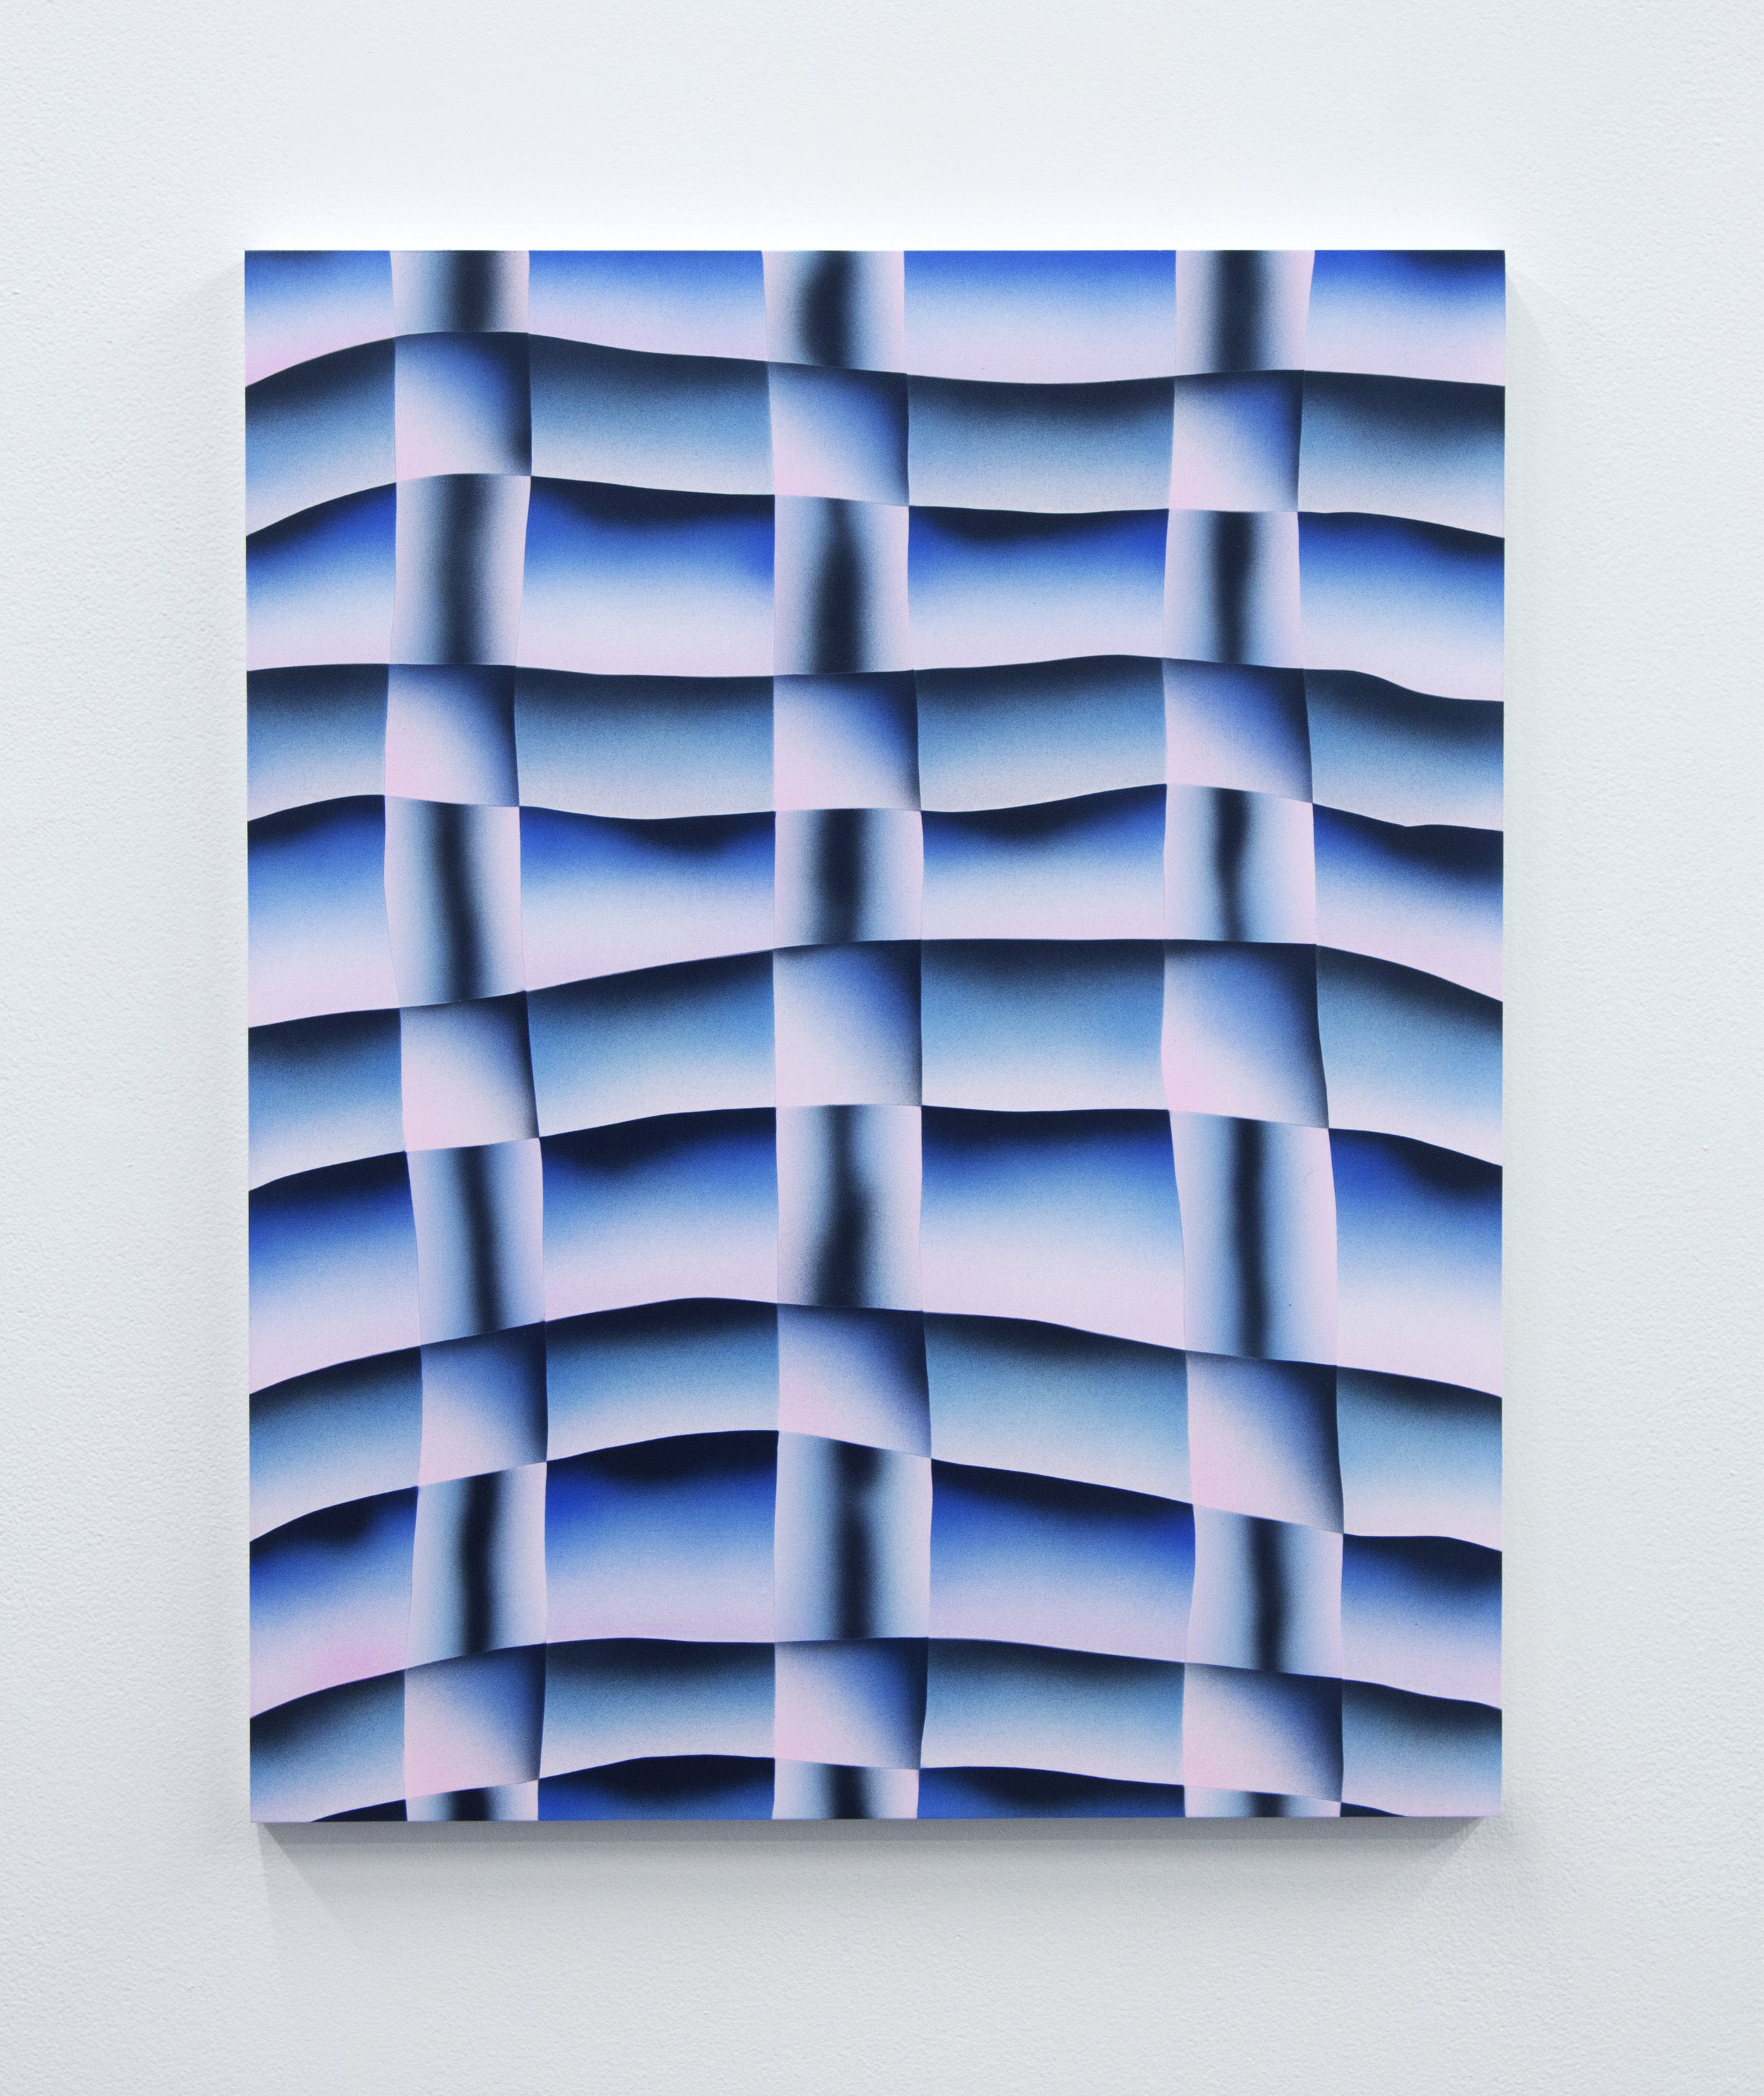 Brian Willmont, Untitled, acrylic on wood panel, 20 x 16 in, 2017